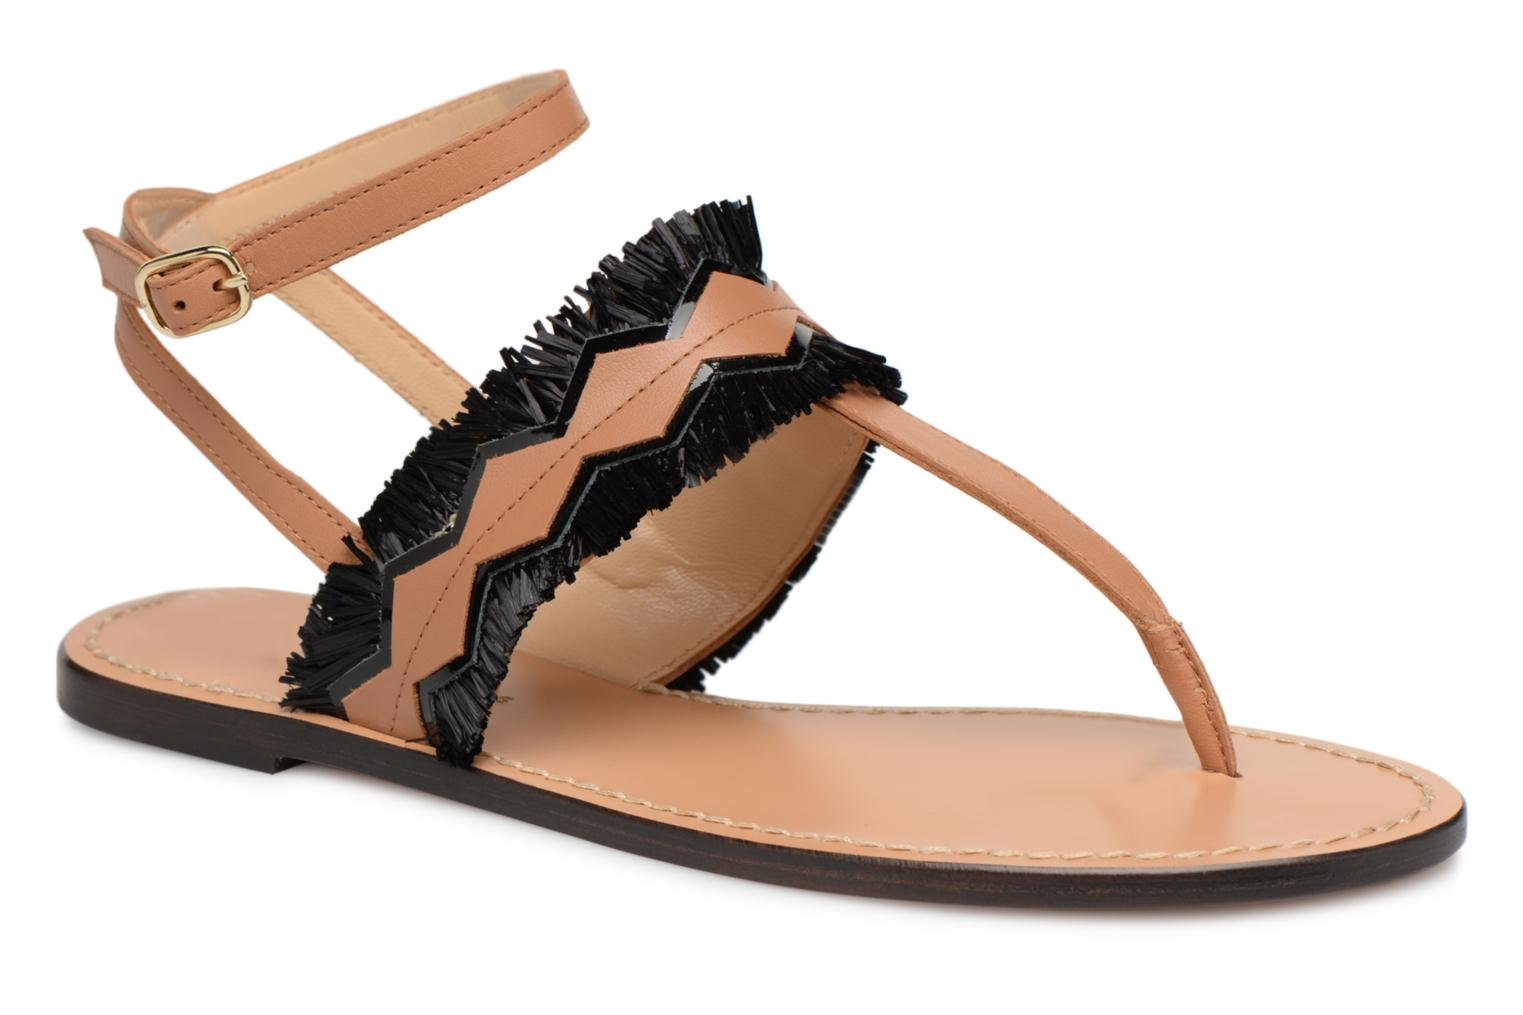 Tila March - Damen - TMS255-AL-01-28 - Sandalen - braun